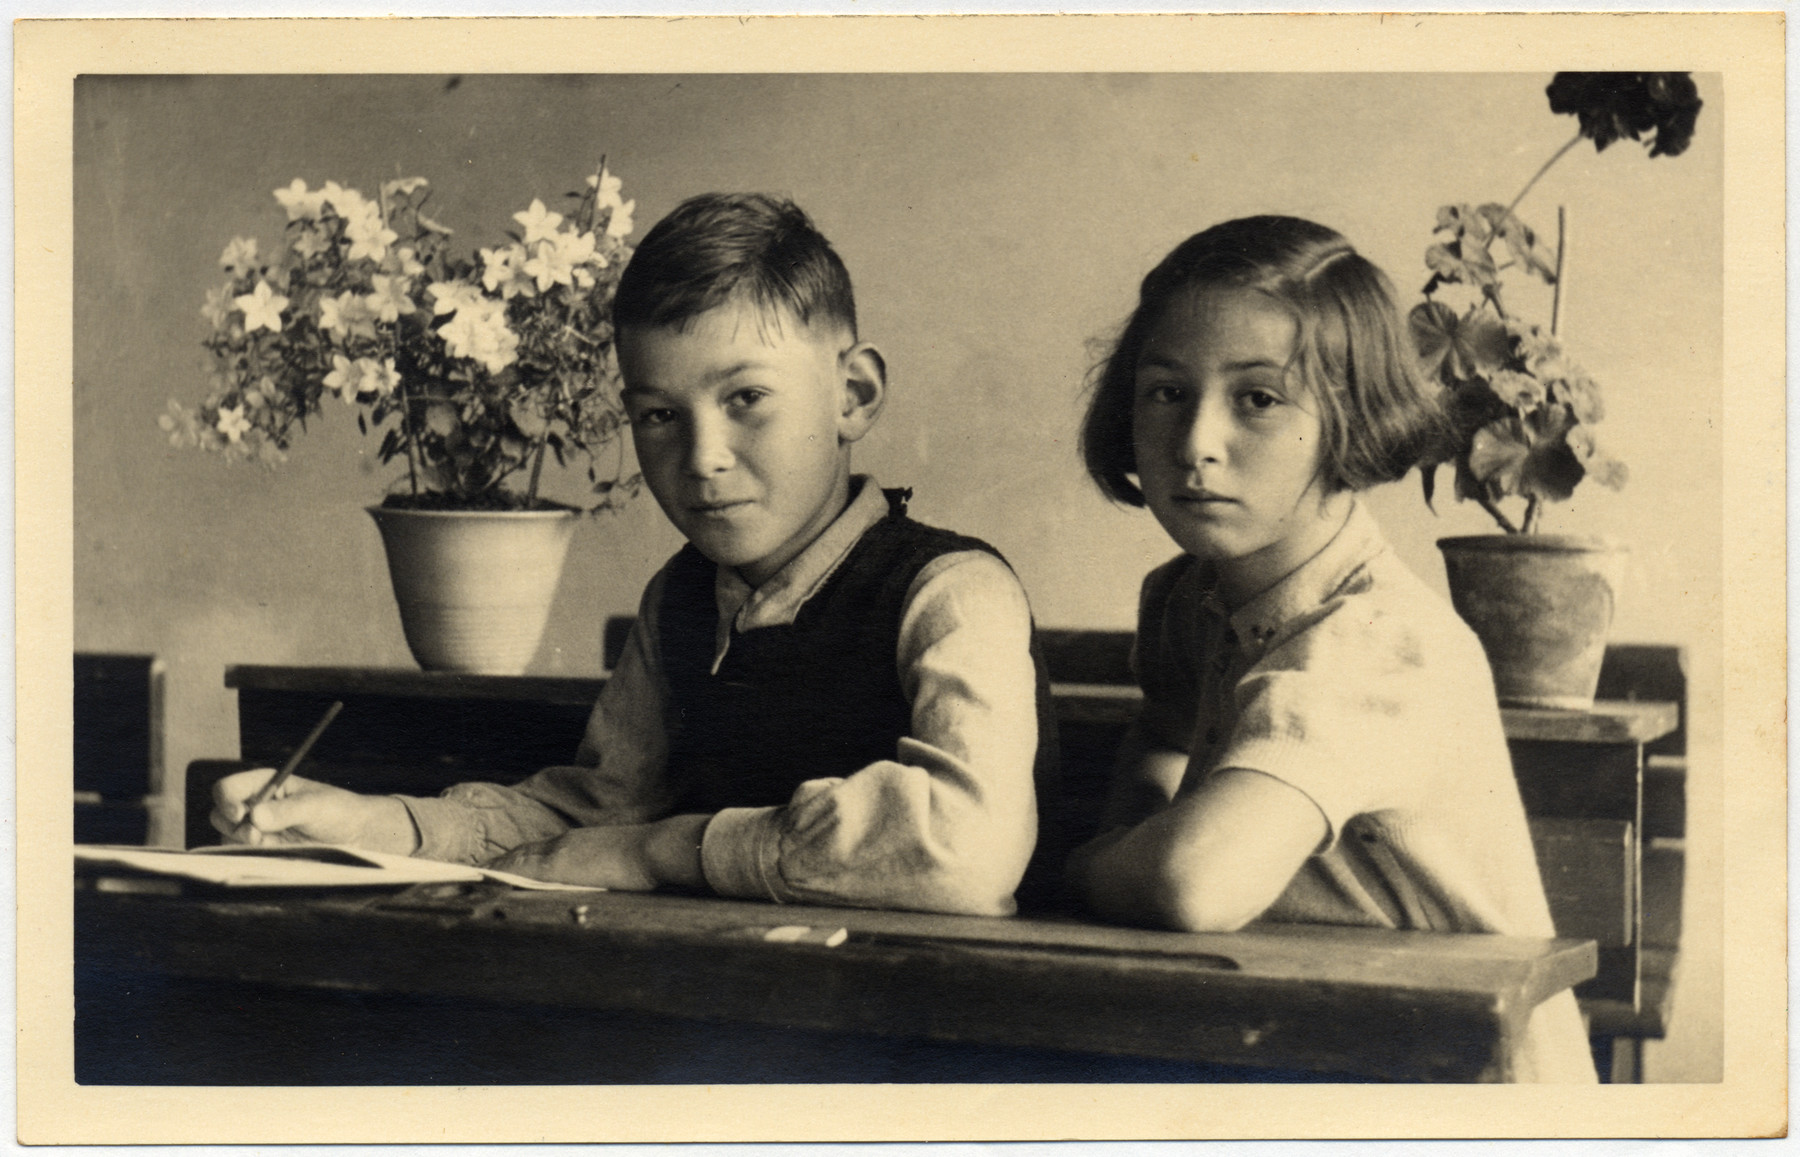 Jaap and Clara Vromen, a Dutch Jewish brother and sister work, at a desk a few months after the German invasion.